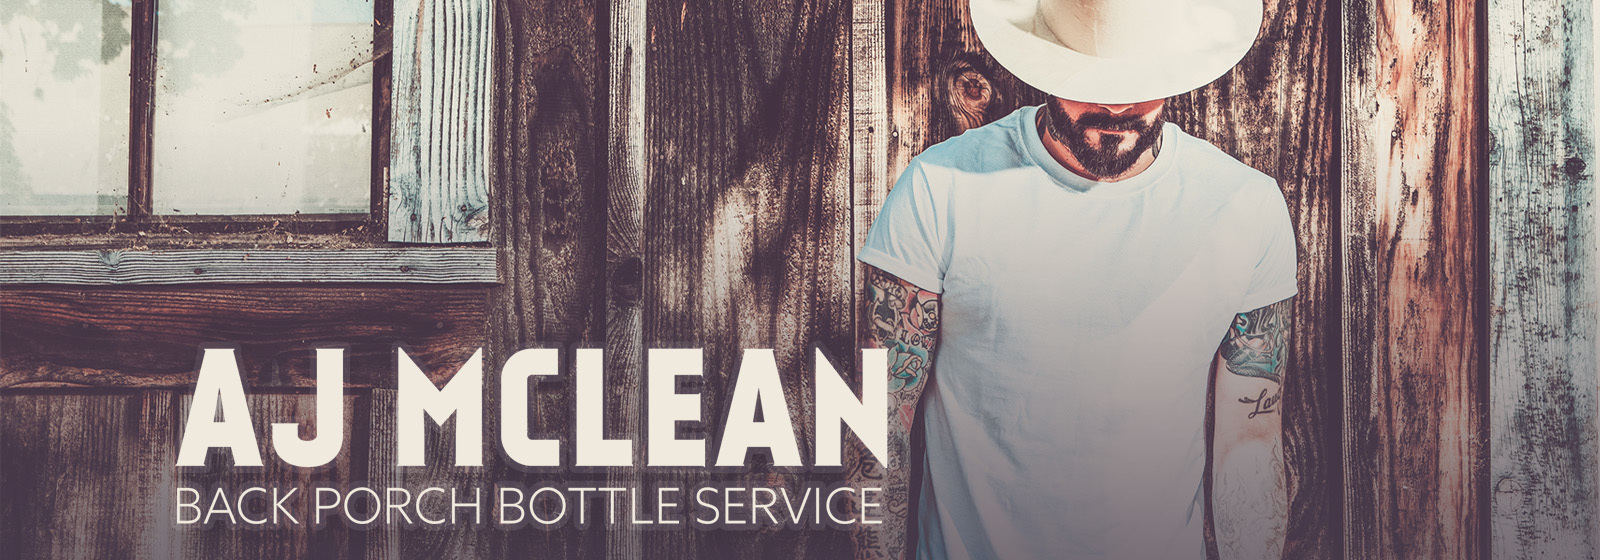 AJ McLean Official Apparel Store